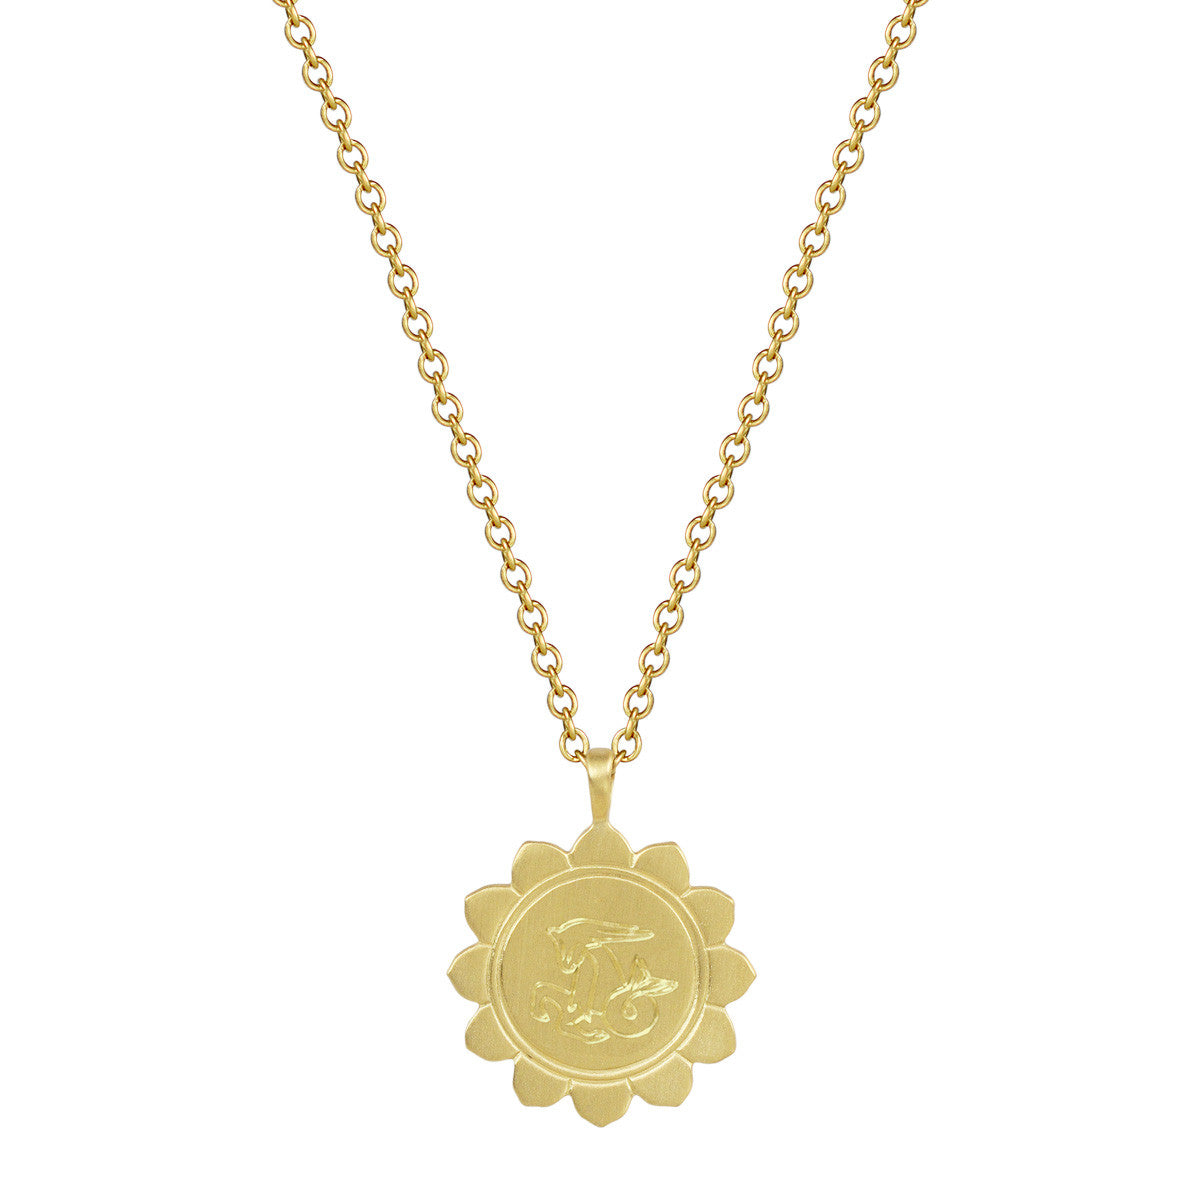 18K Gold Medium Lotus Capricorn Astrology Pendant